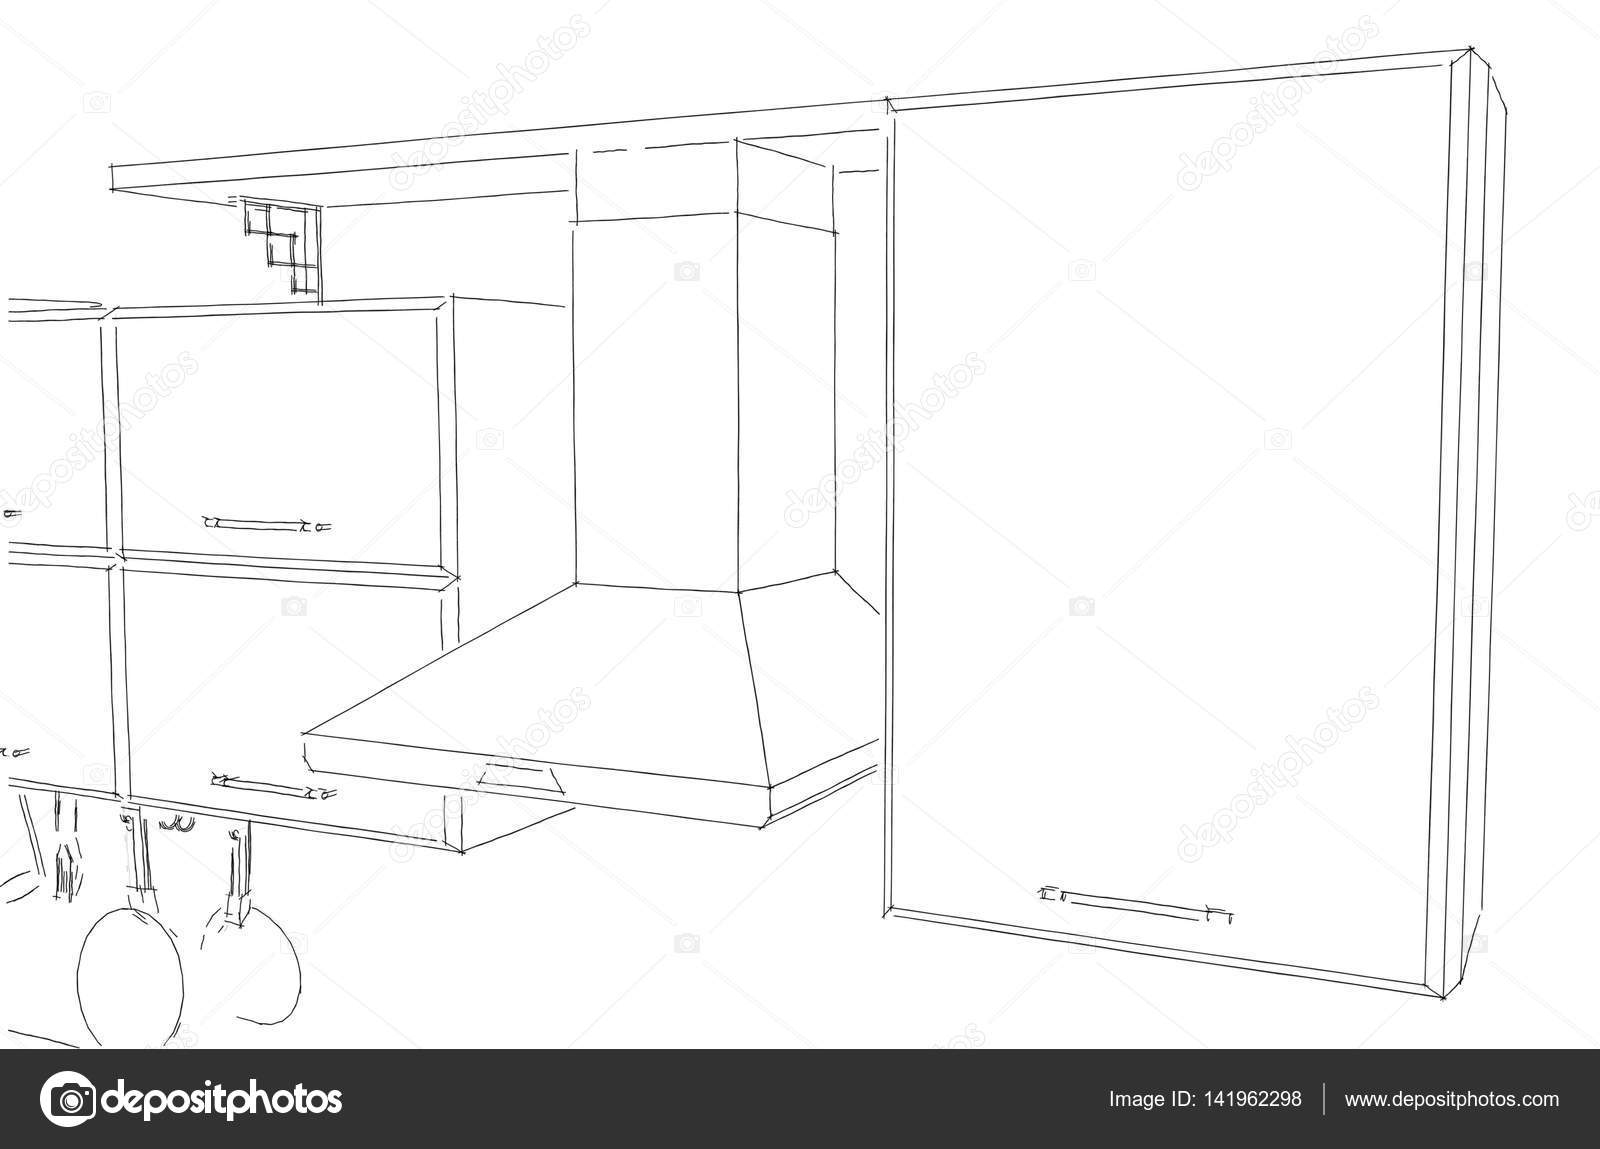 Kitchen Hood With Cabinets And Shelf Layout Sketch Stock Photo